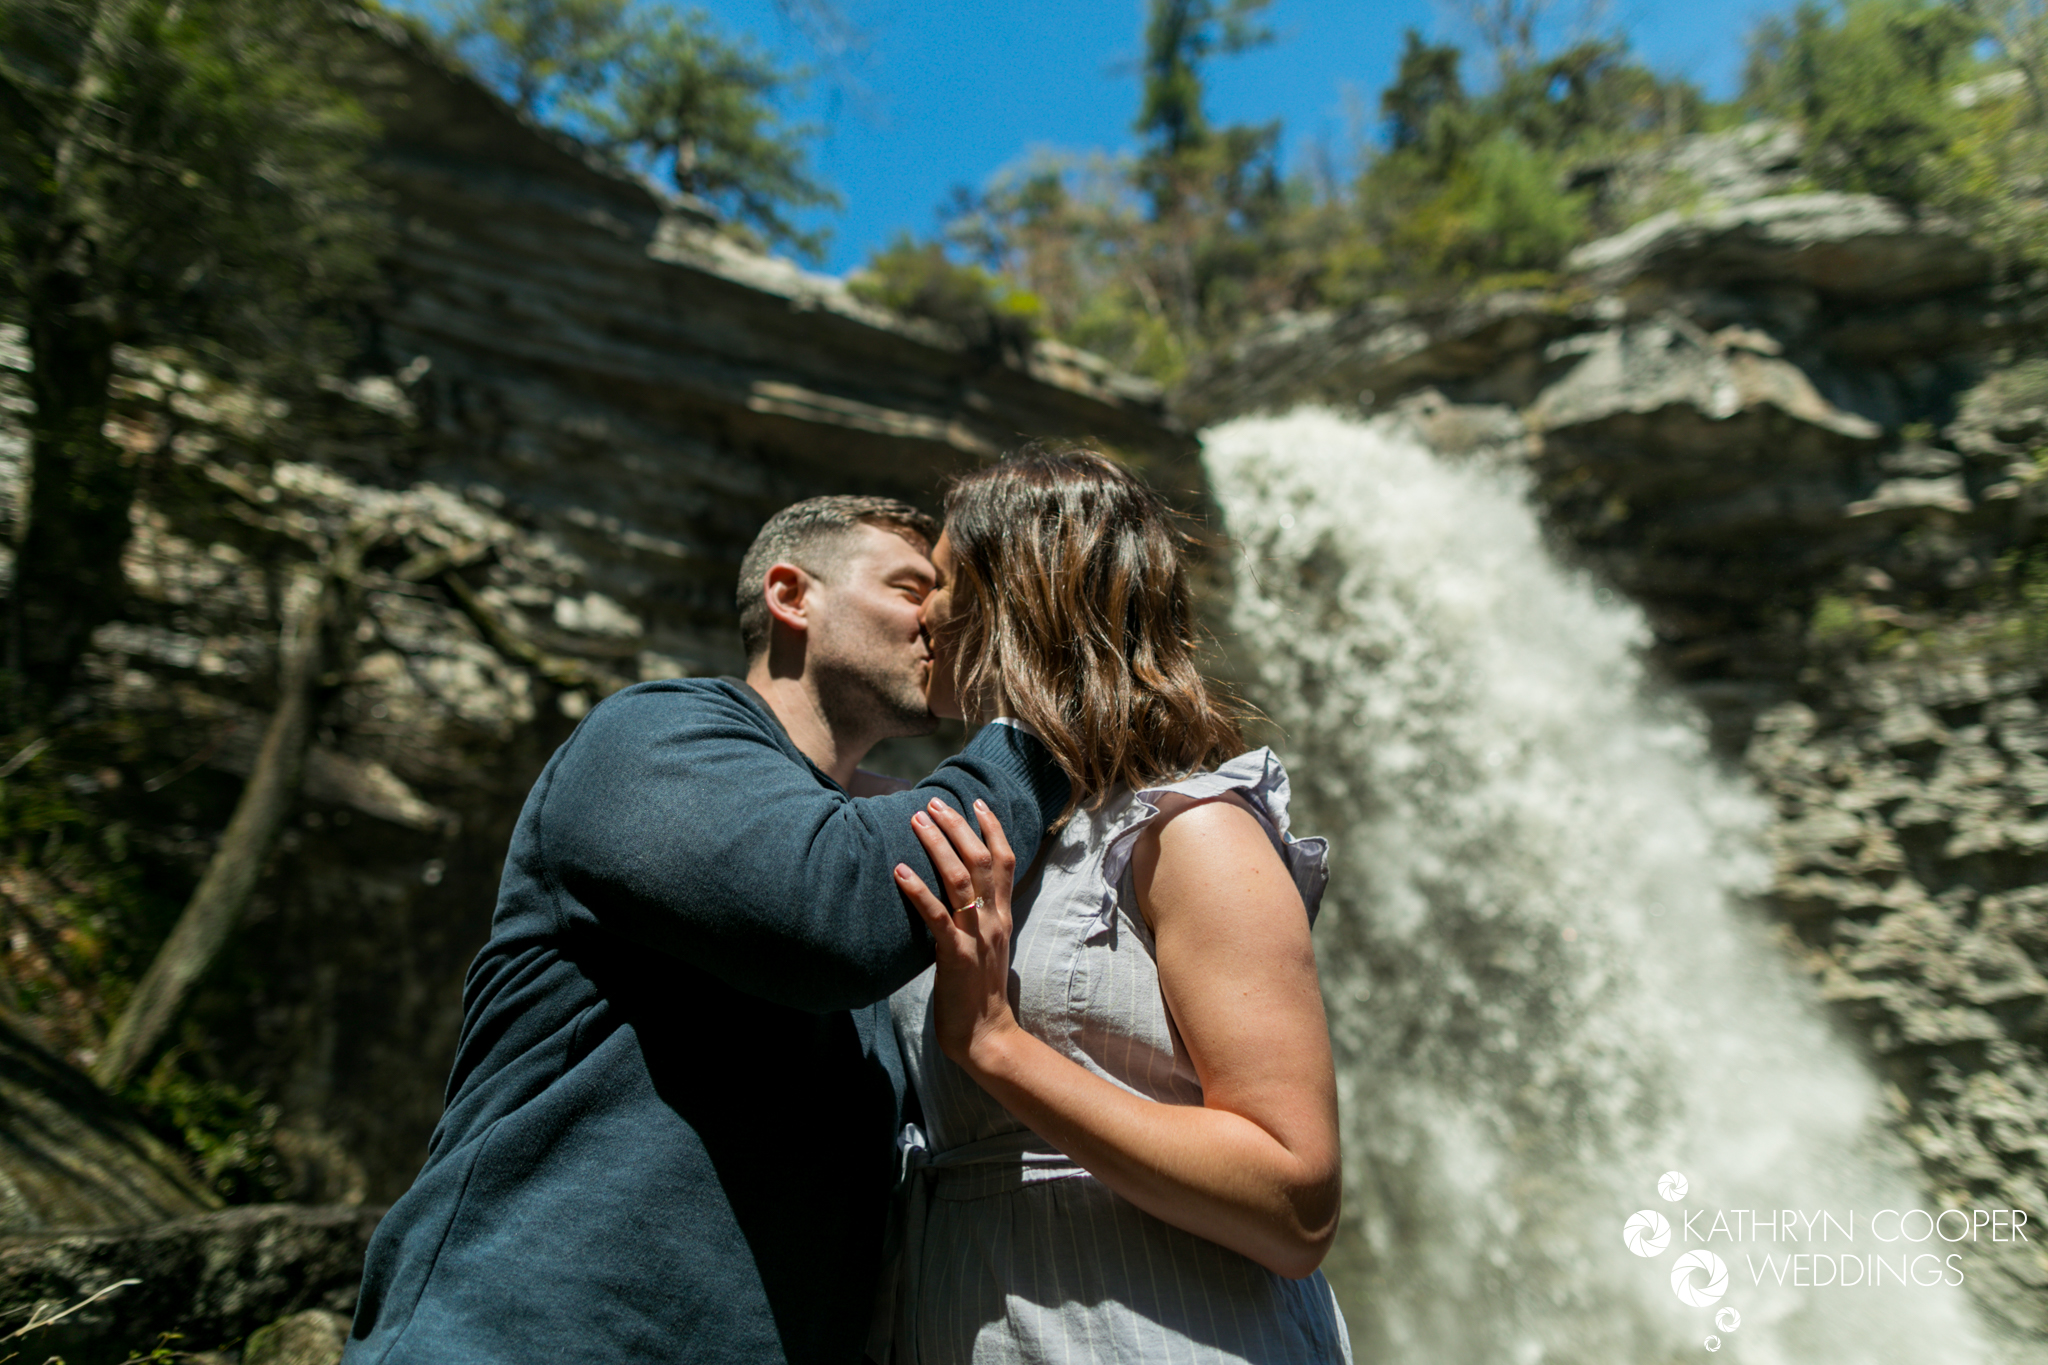 New Paltz waterfall in Minnewaska with Queens couple engagement photos under falls